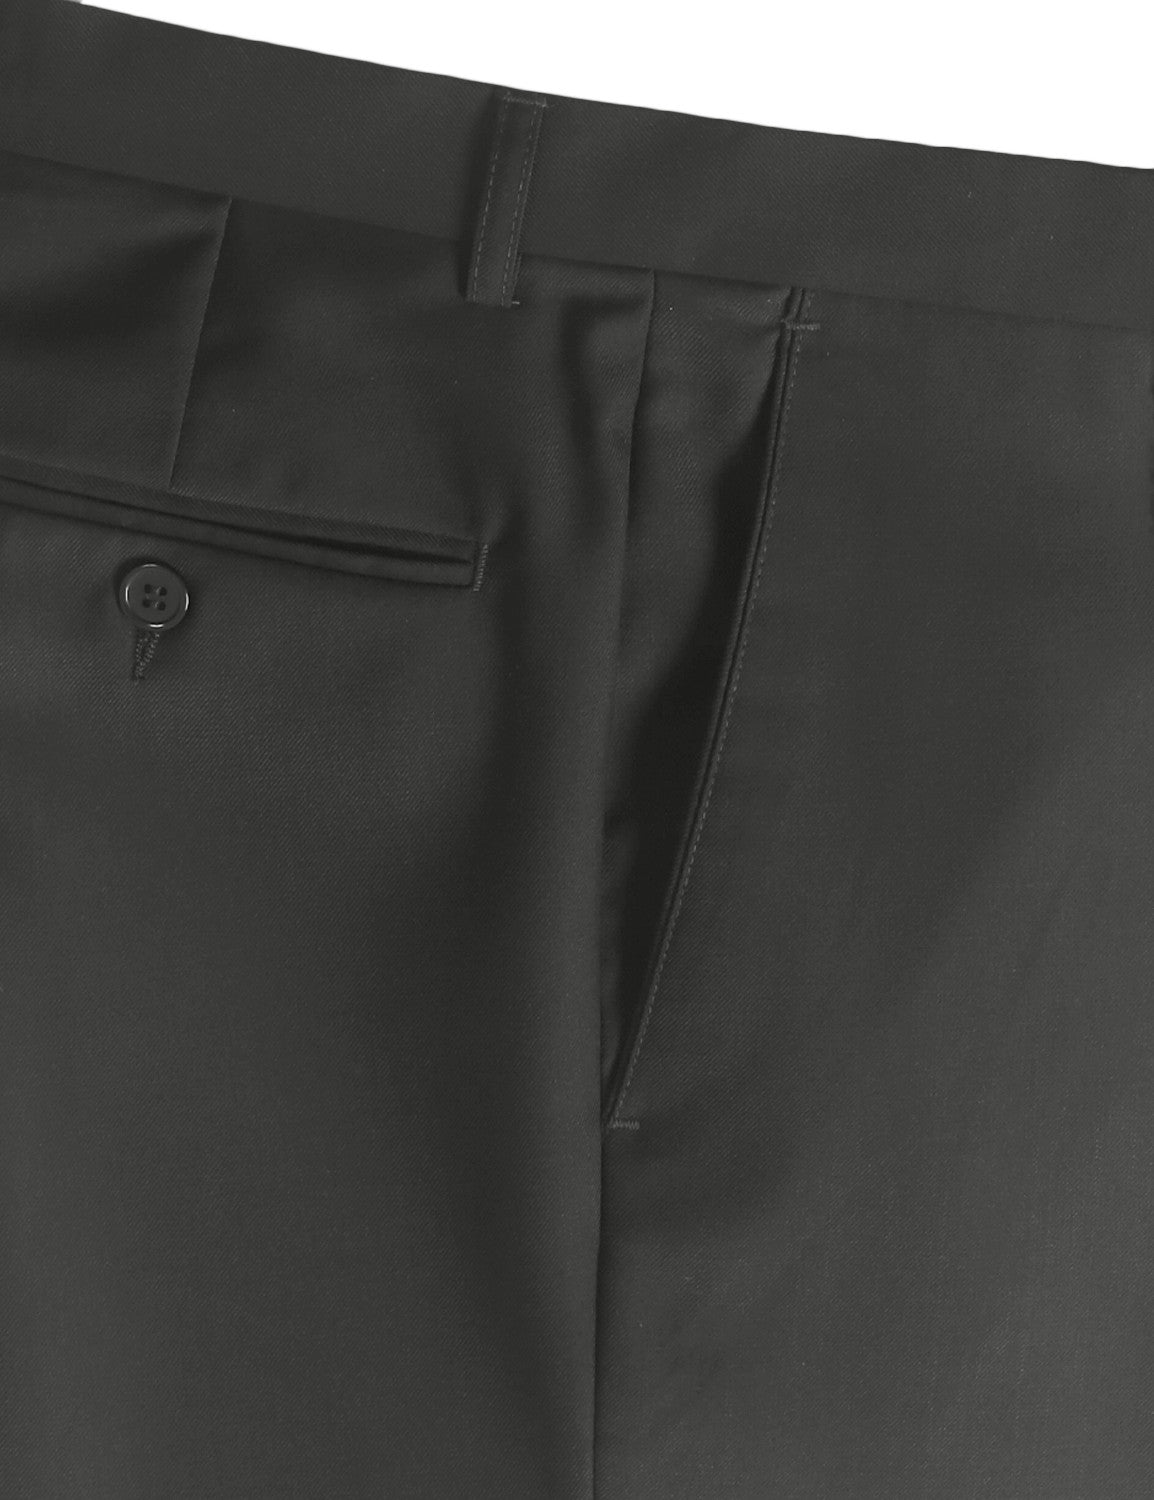 04CHR Modern Fit Flat Front Dress Trousers- MONDAYSUIT